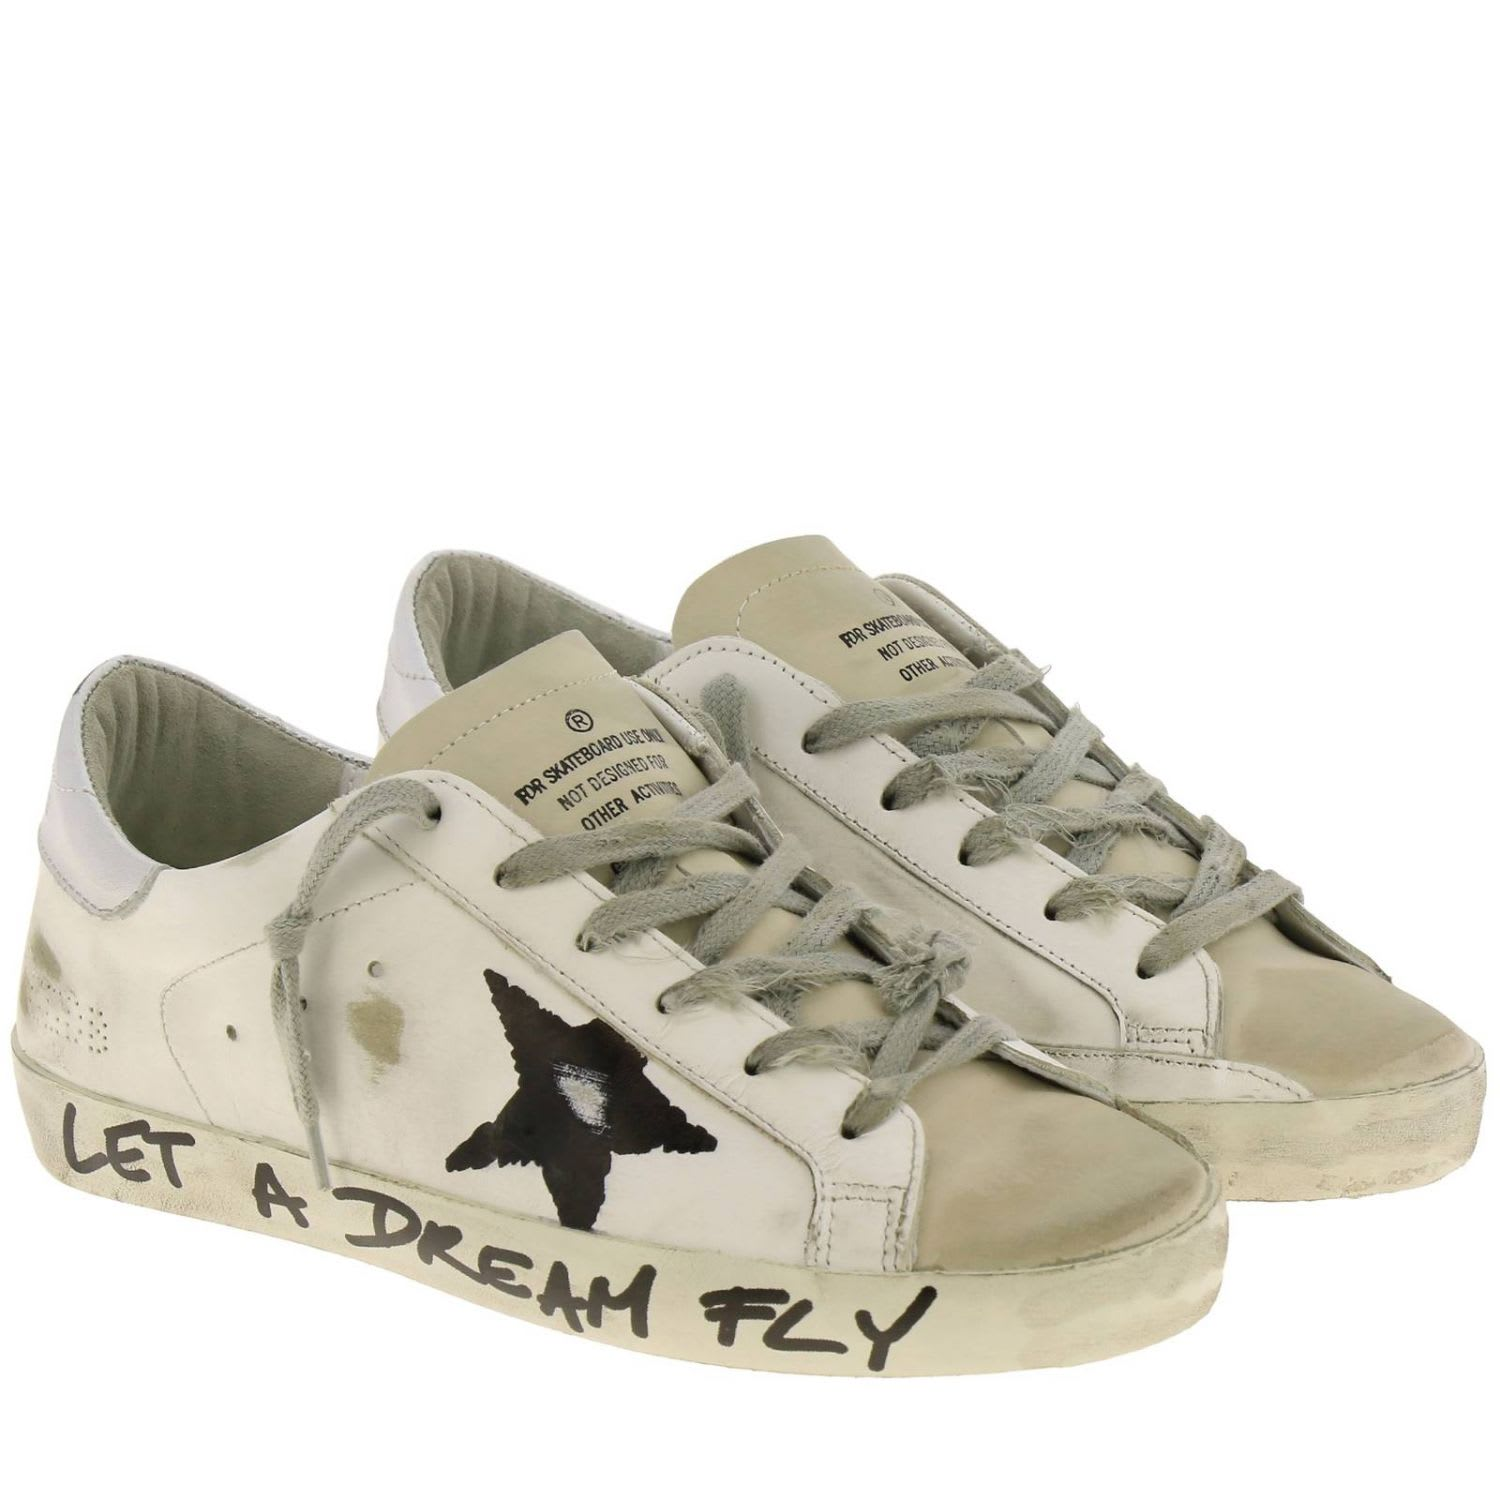 site réputé b4489 f48ea Golden Goose Sneakers Superstar Golden Goose Sneakers In Used Leather With  Laminated Heel And Painted Star